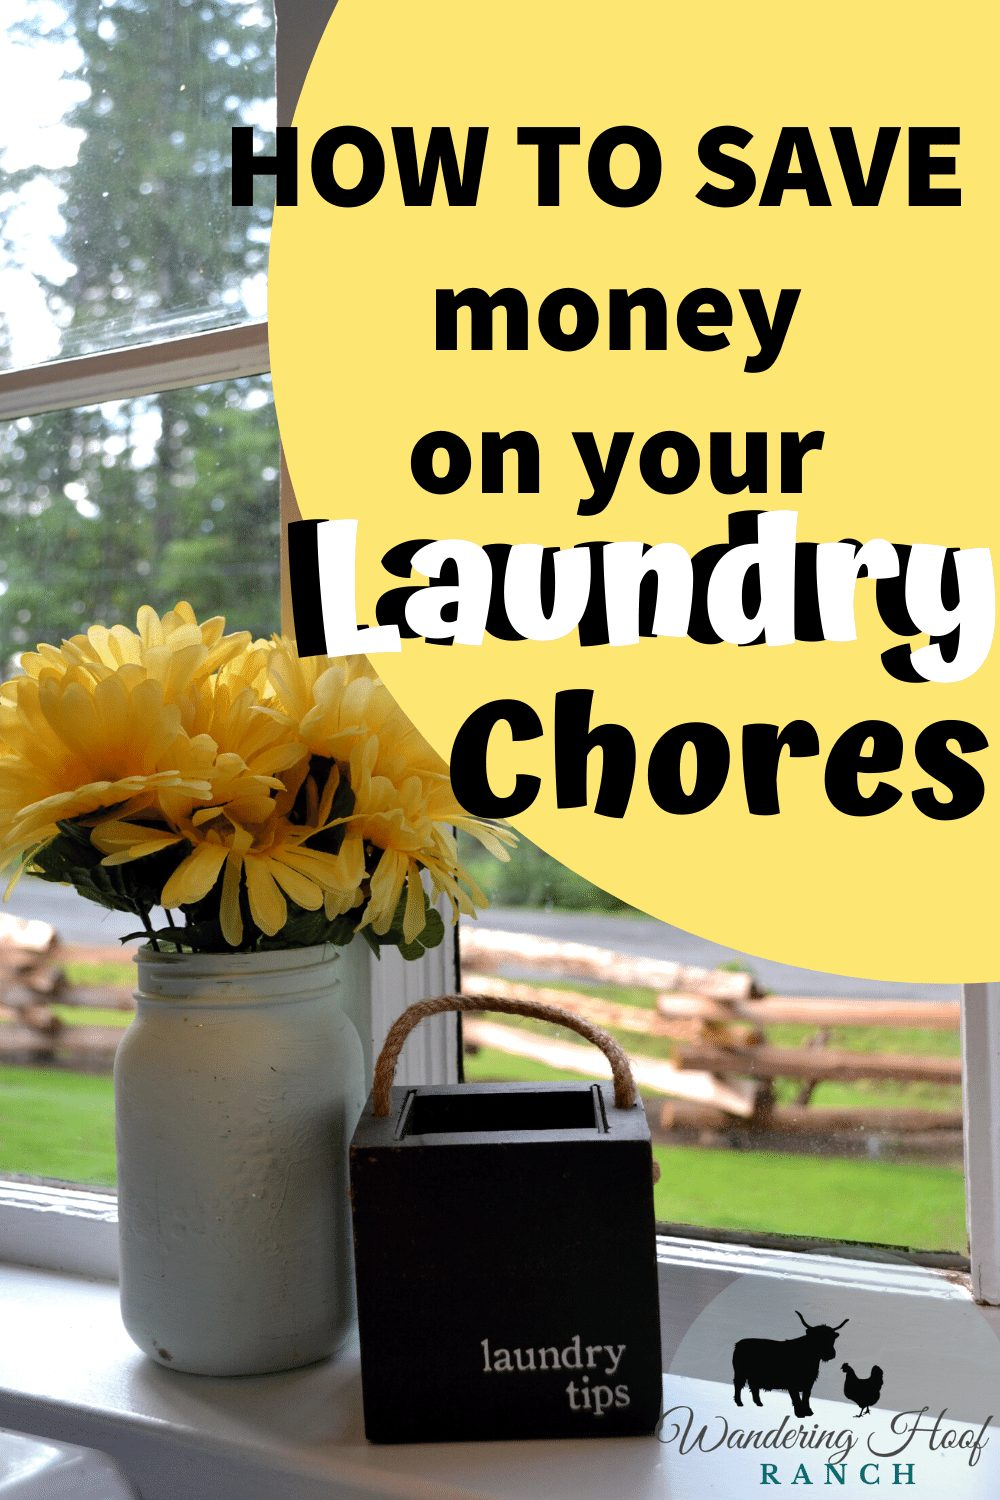 how to save money on your laundry chores